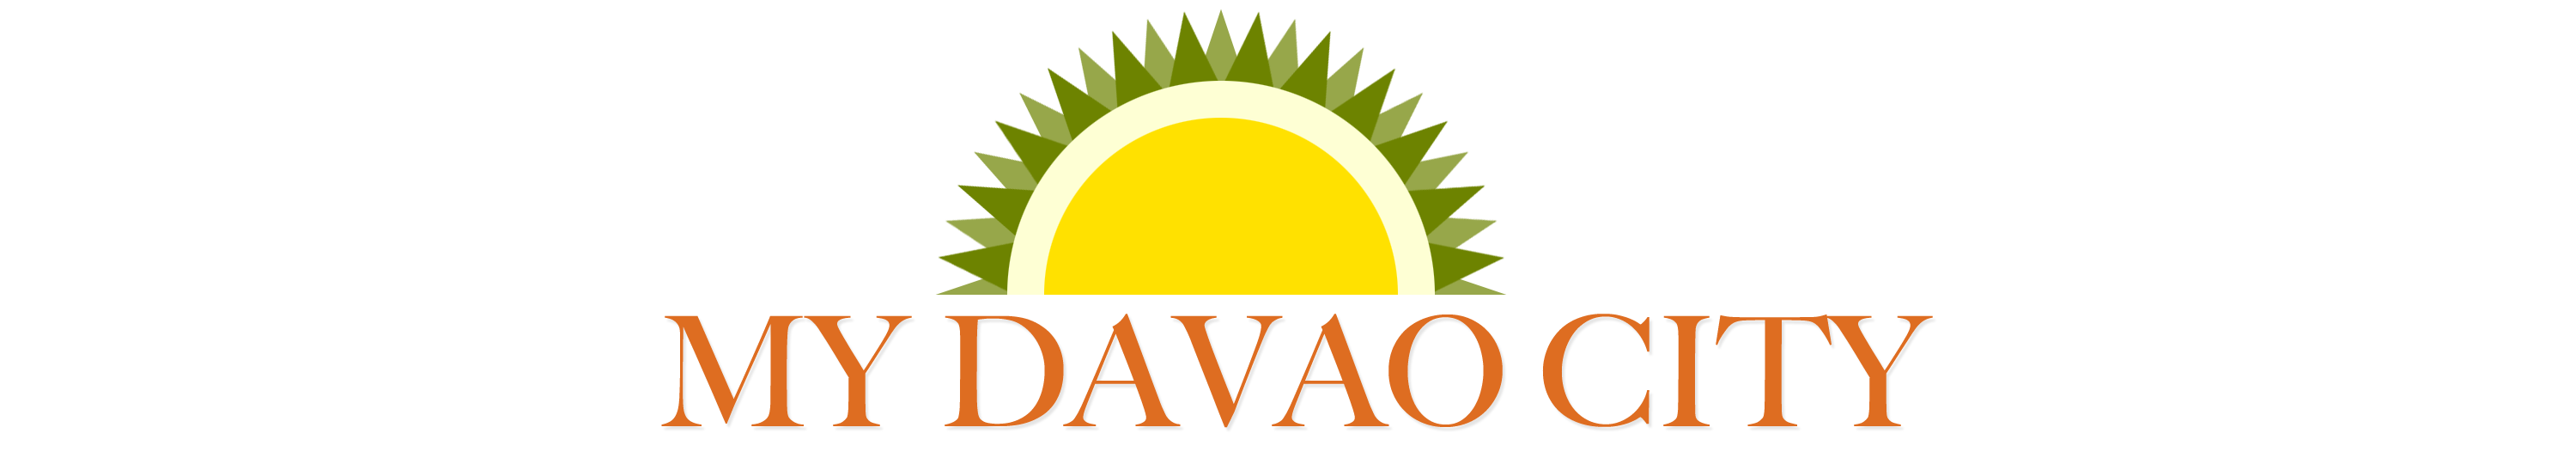 My Davao City